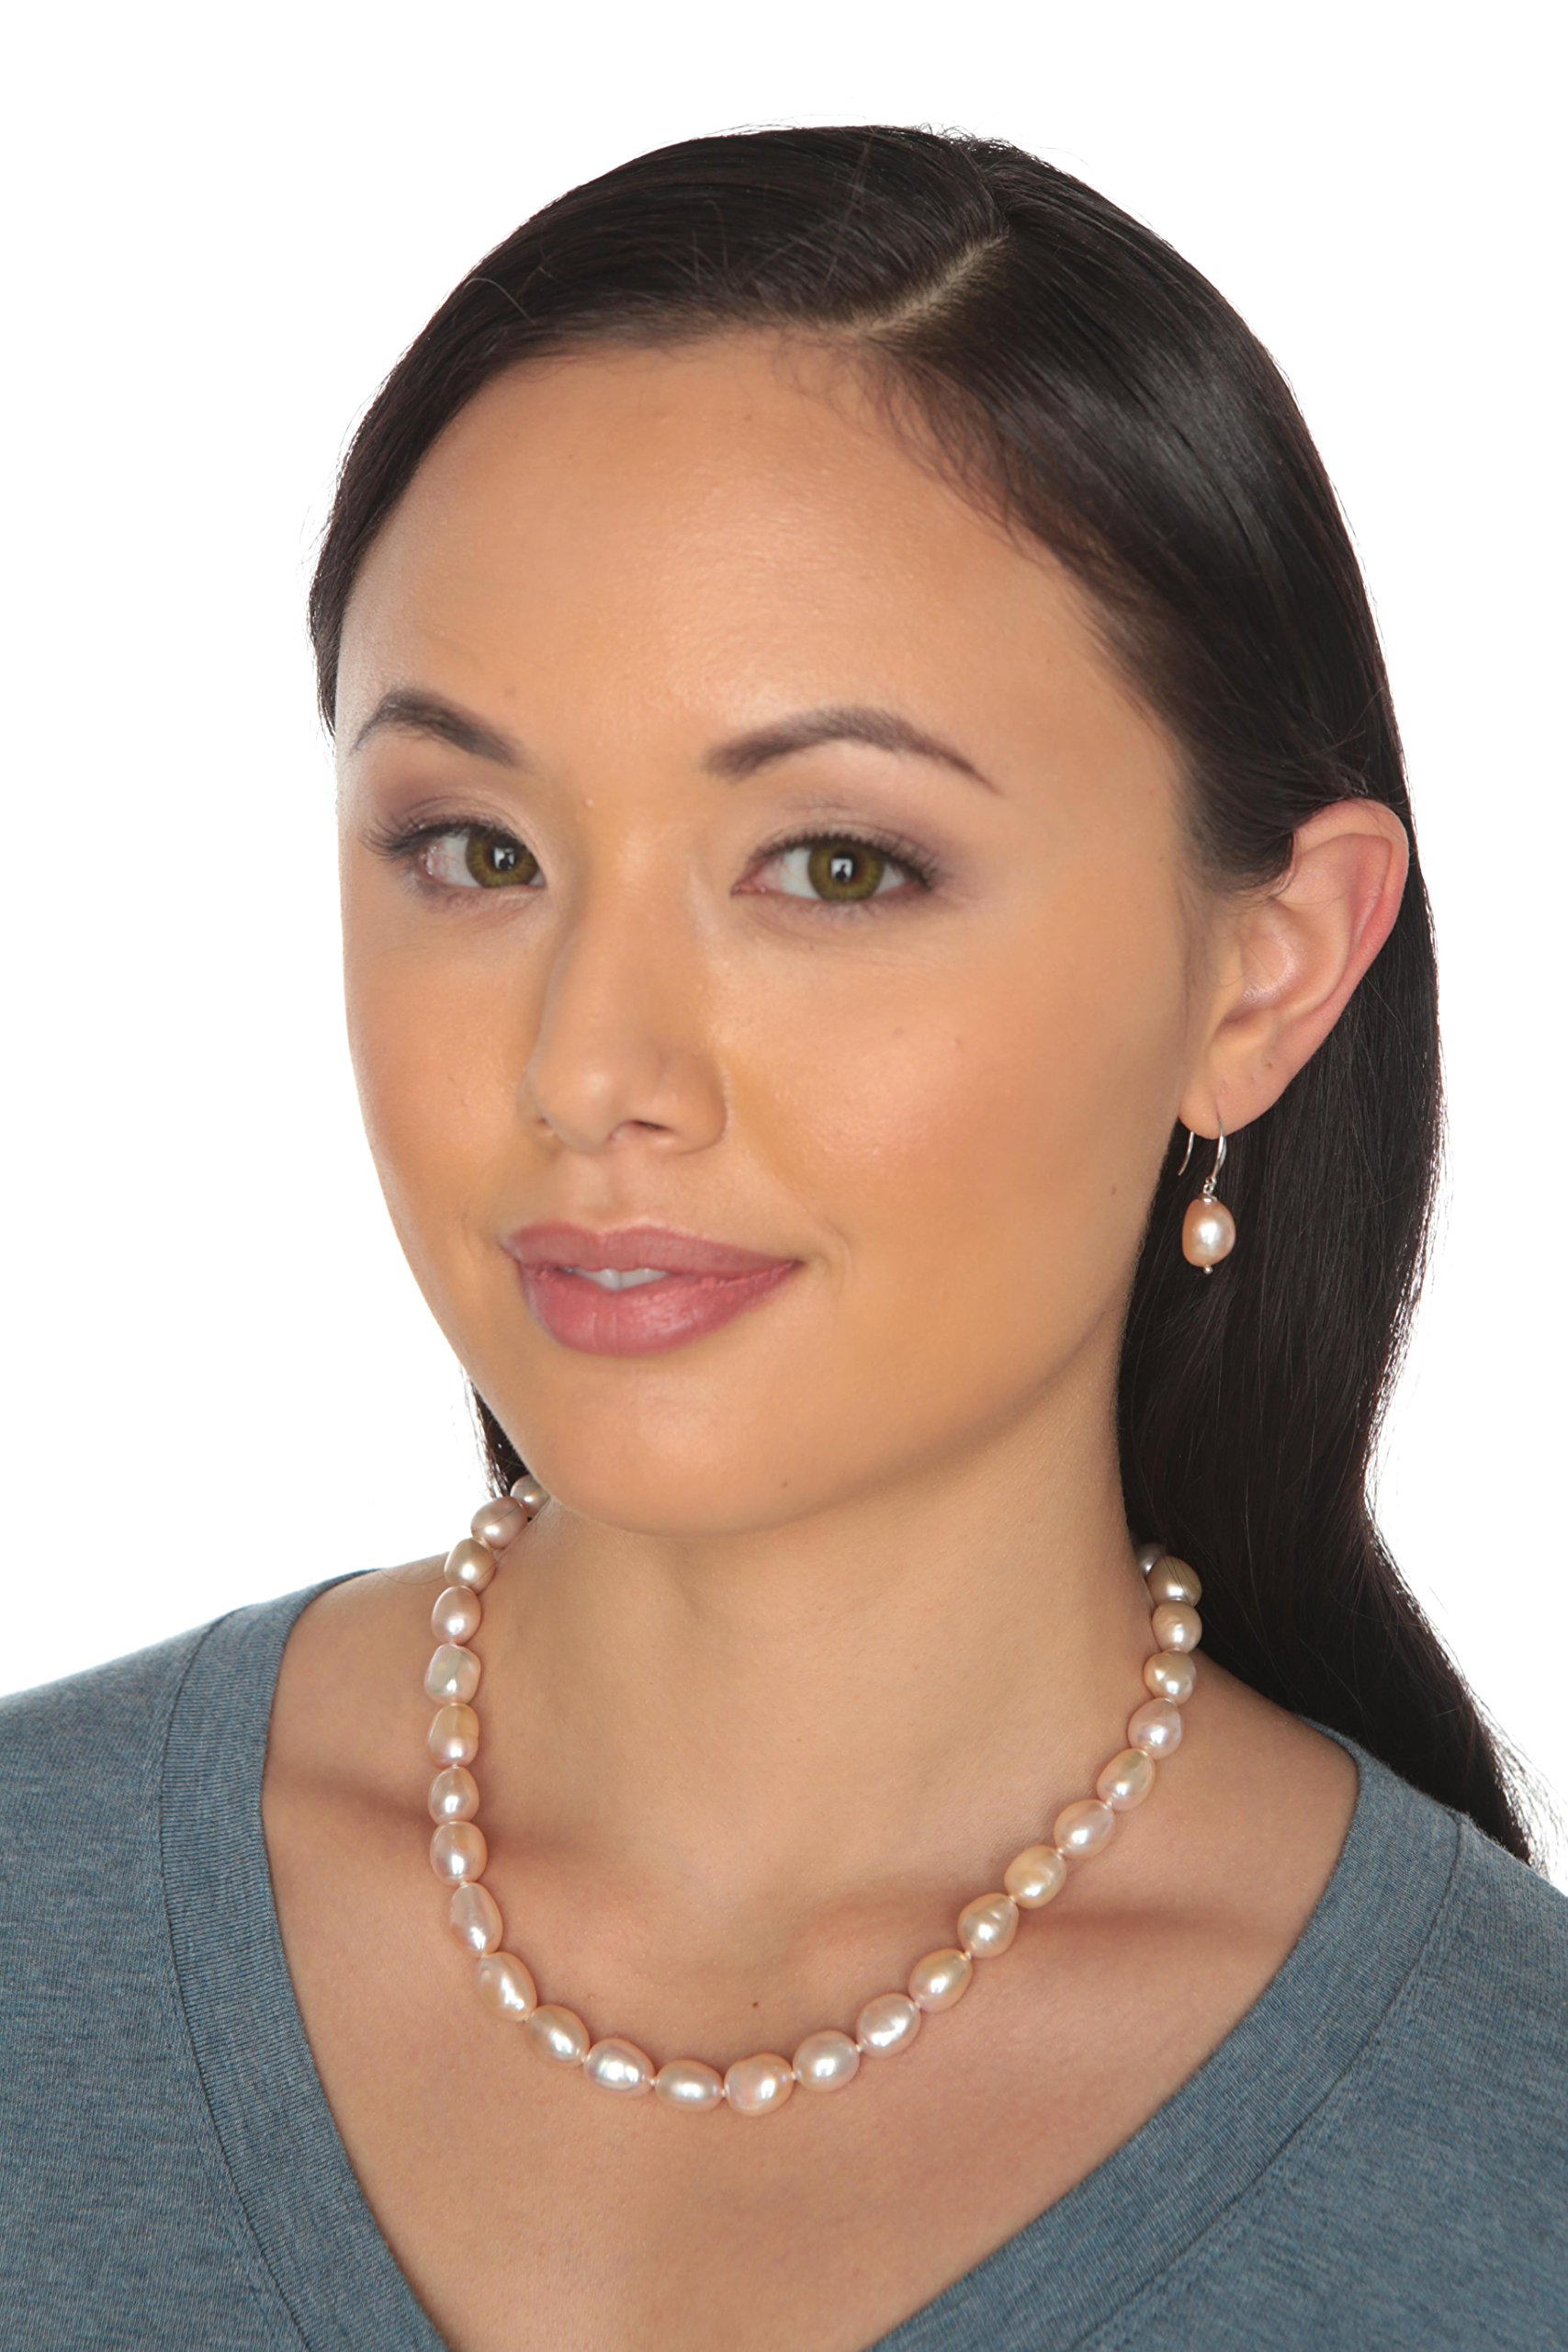 HinsonGayle AAA Handpicked 10-11mm Pink Baroque Freshwater Cultured Pearl Necklace (Silver )-18 in length by HinsonGayle Fine Pearl Jewelry (Image #4)